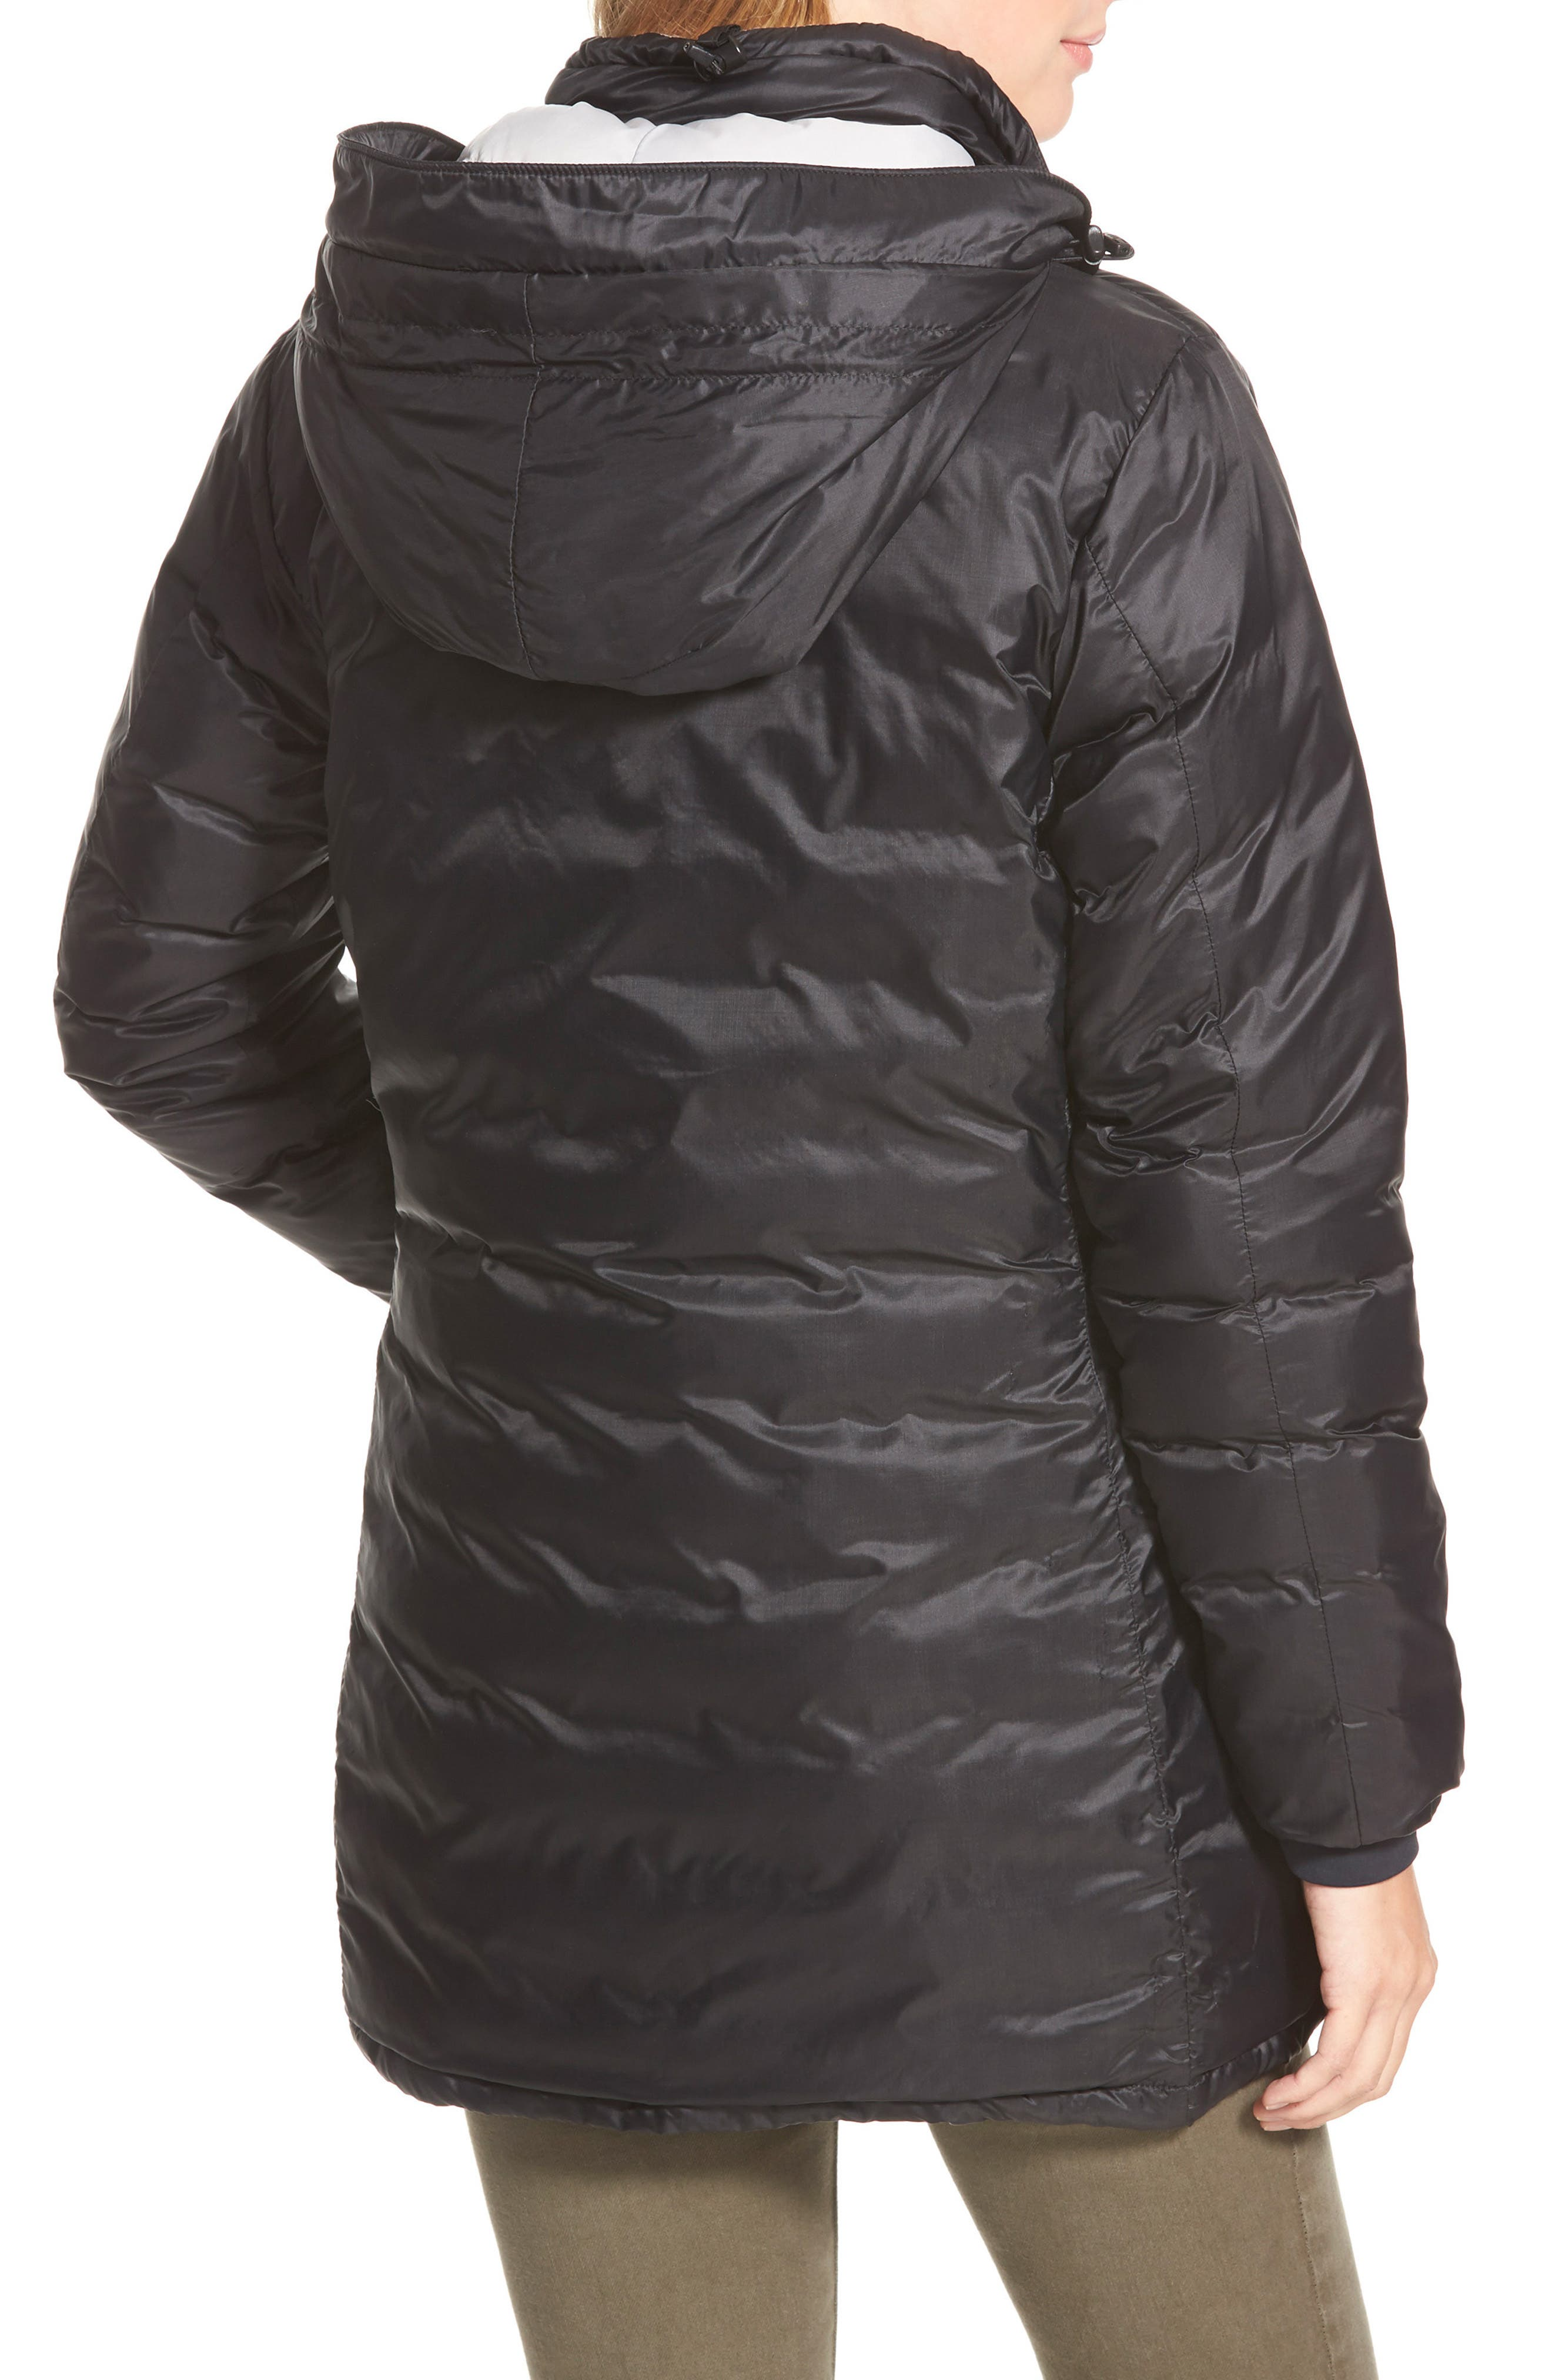 CANADA GOOSE, 'Camp' Slim Fit Hooded Packable Down Jacket, Alternate thumbnail 2, color, BLACK